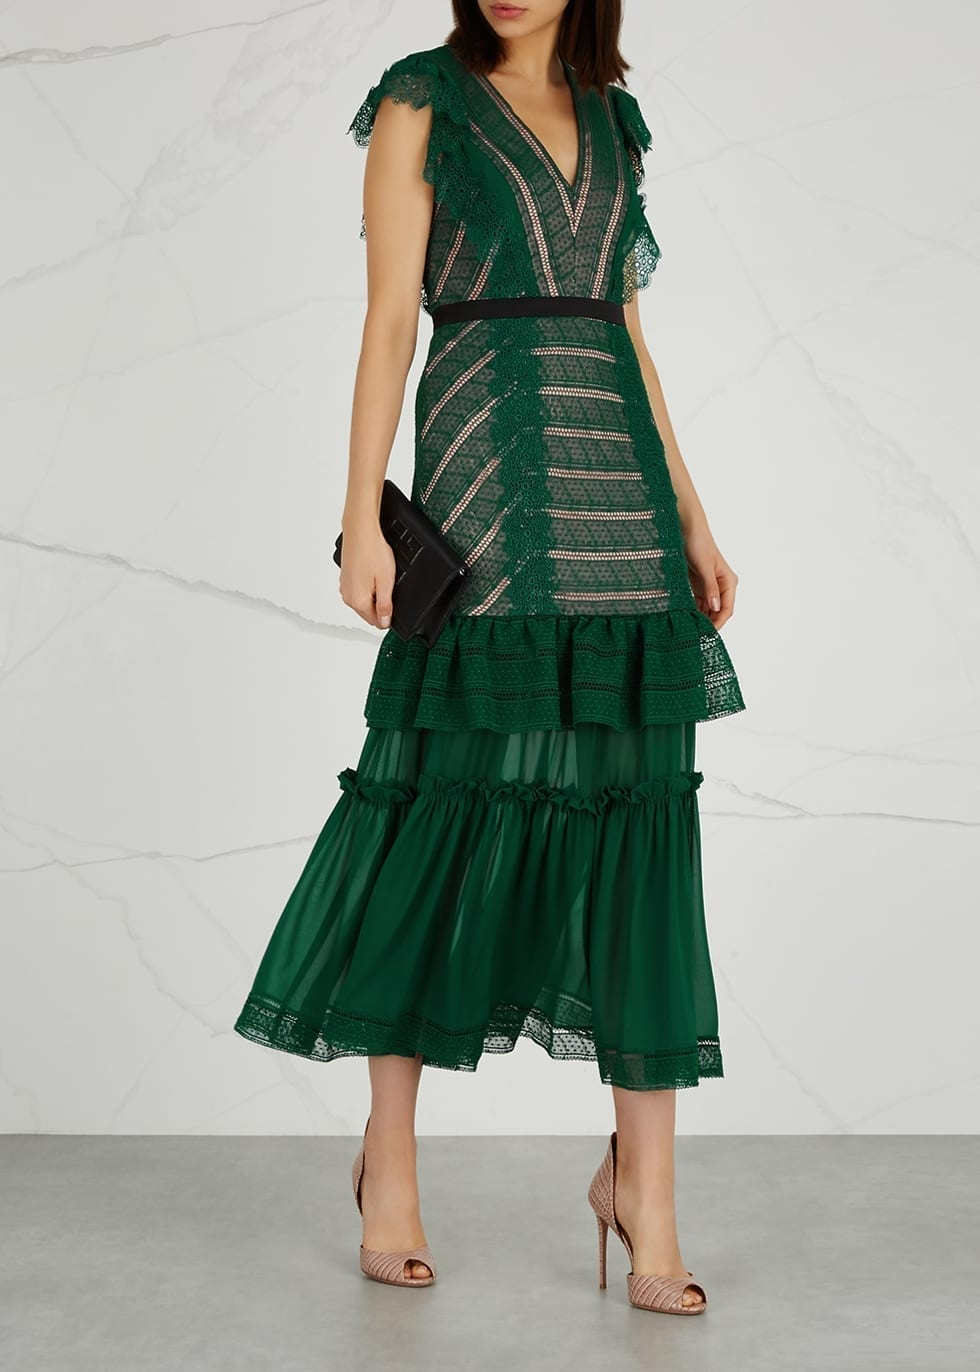 THREE FLOOR Riverside Green Lace Dress